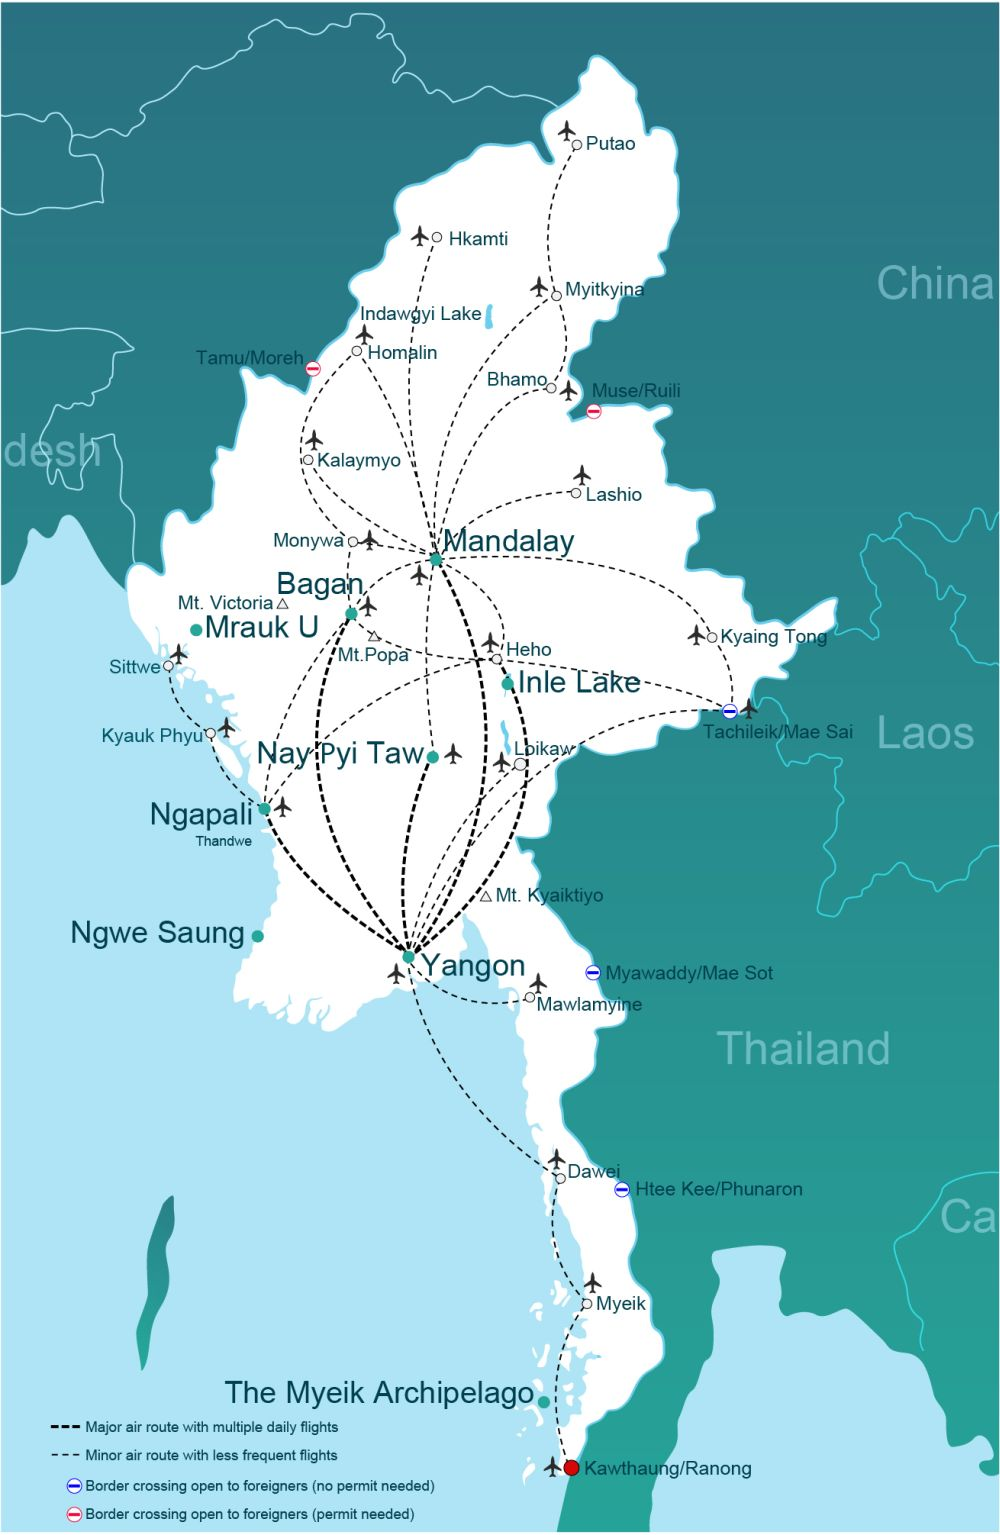 Is It Safe To Travel To Thailand Now